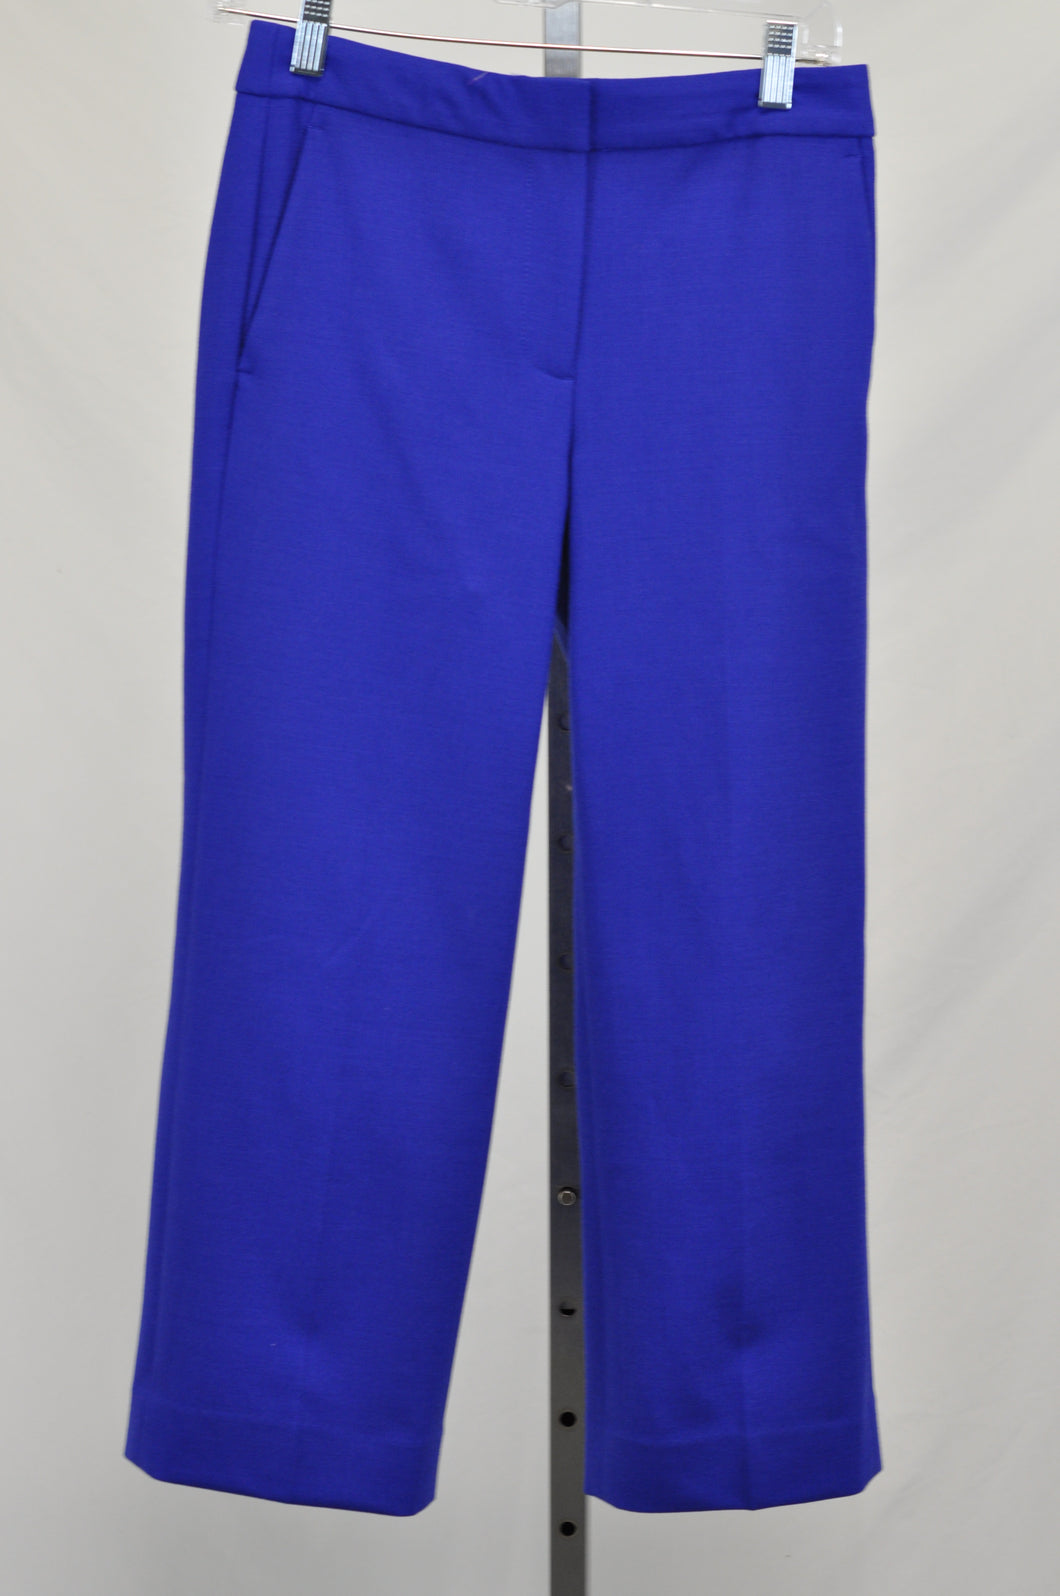 J. Crew Royal Blue Ankle Pant